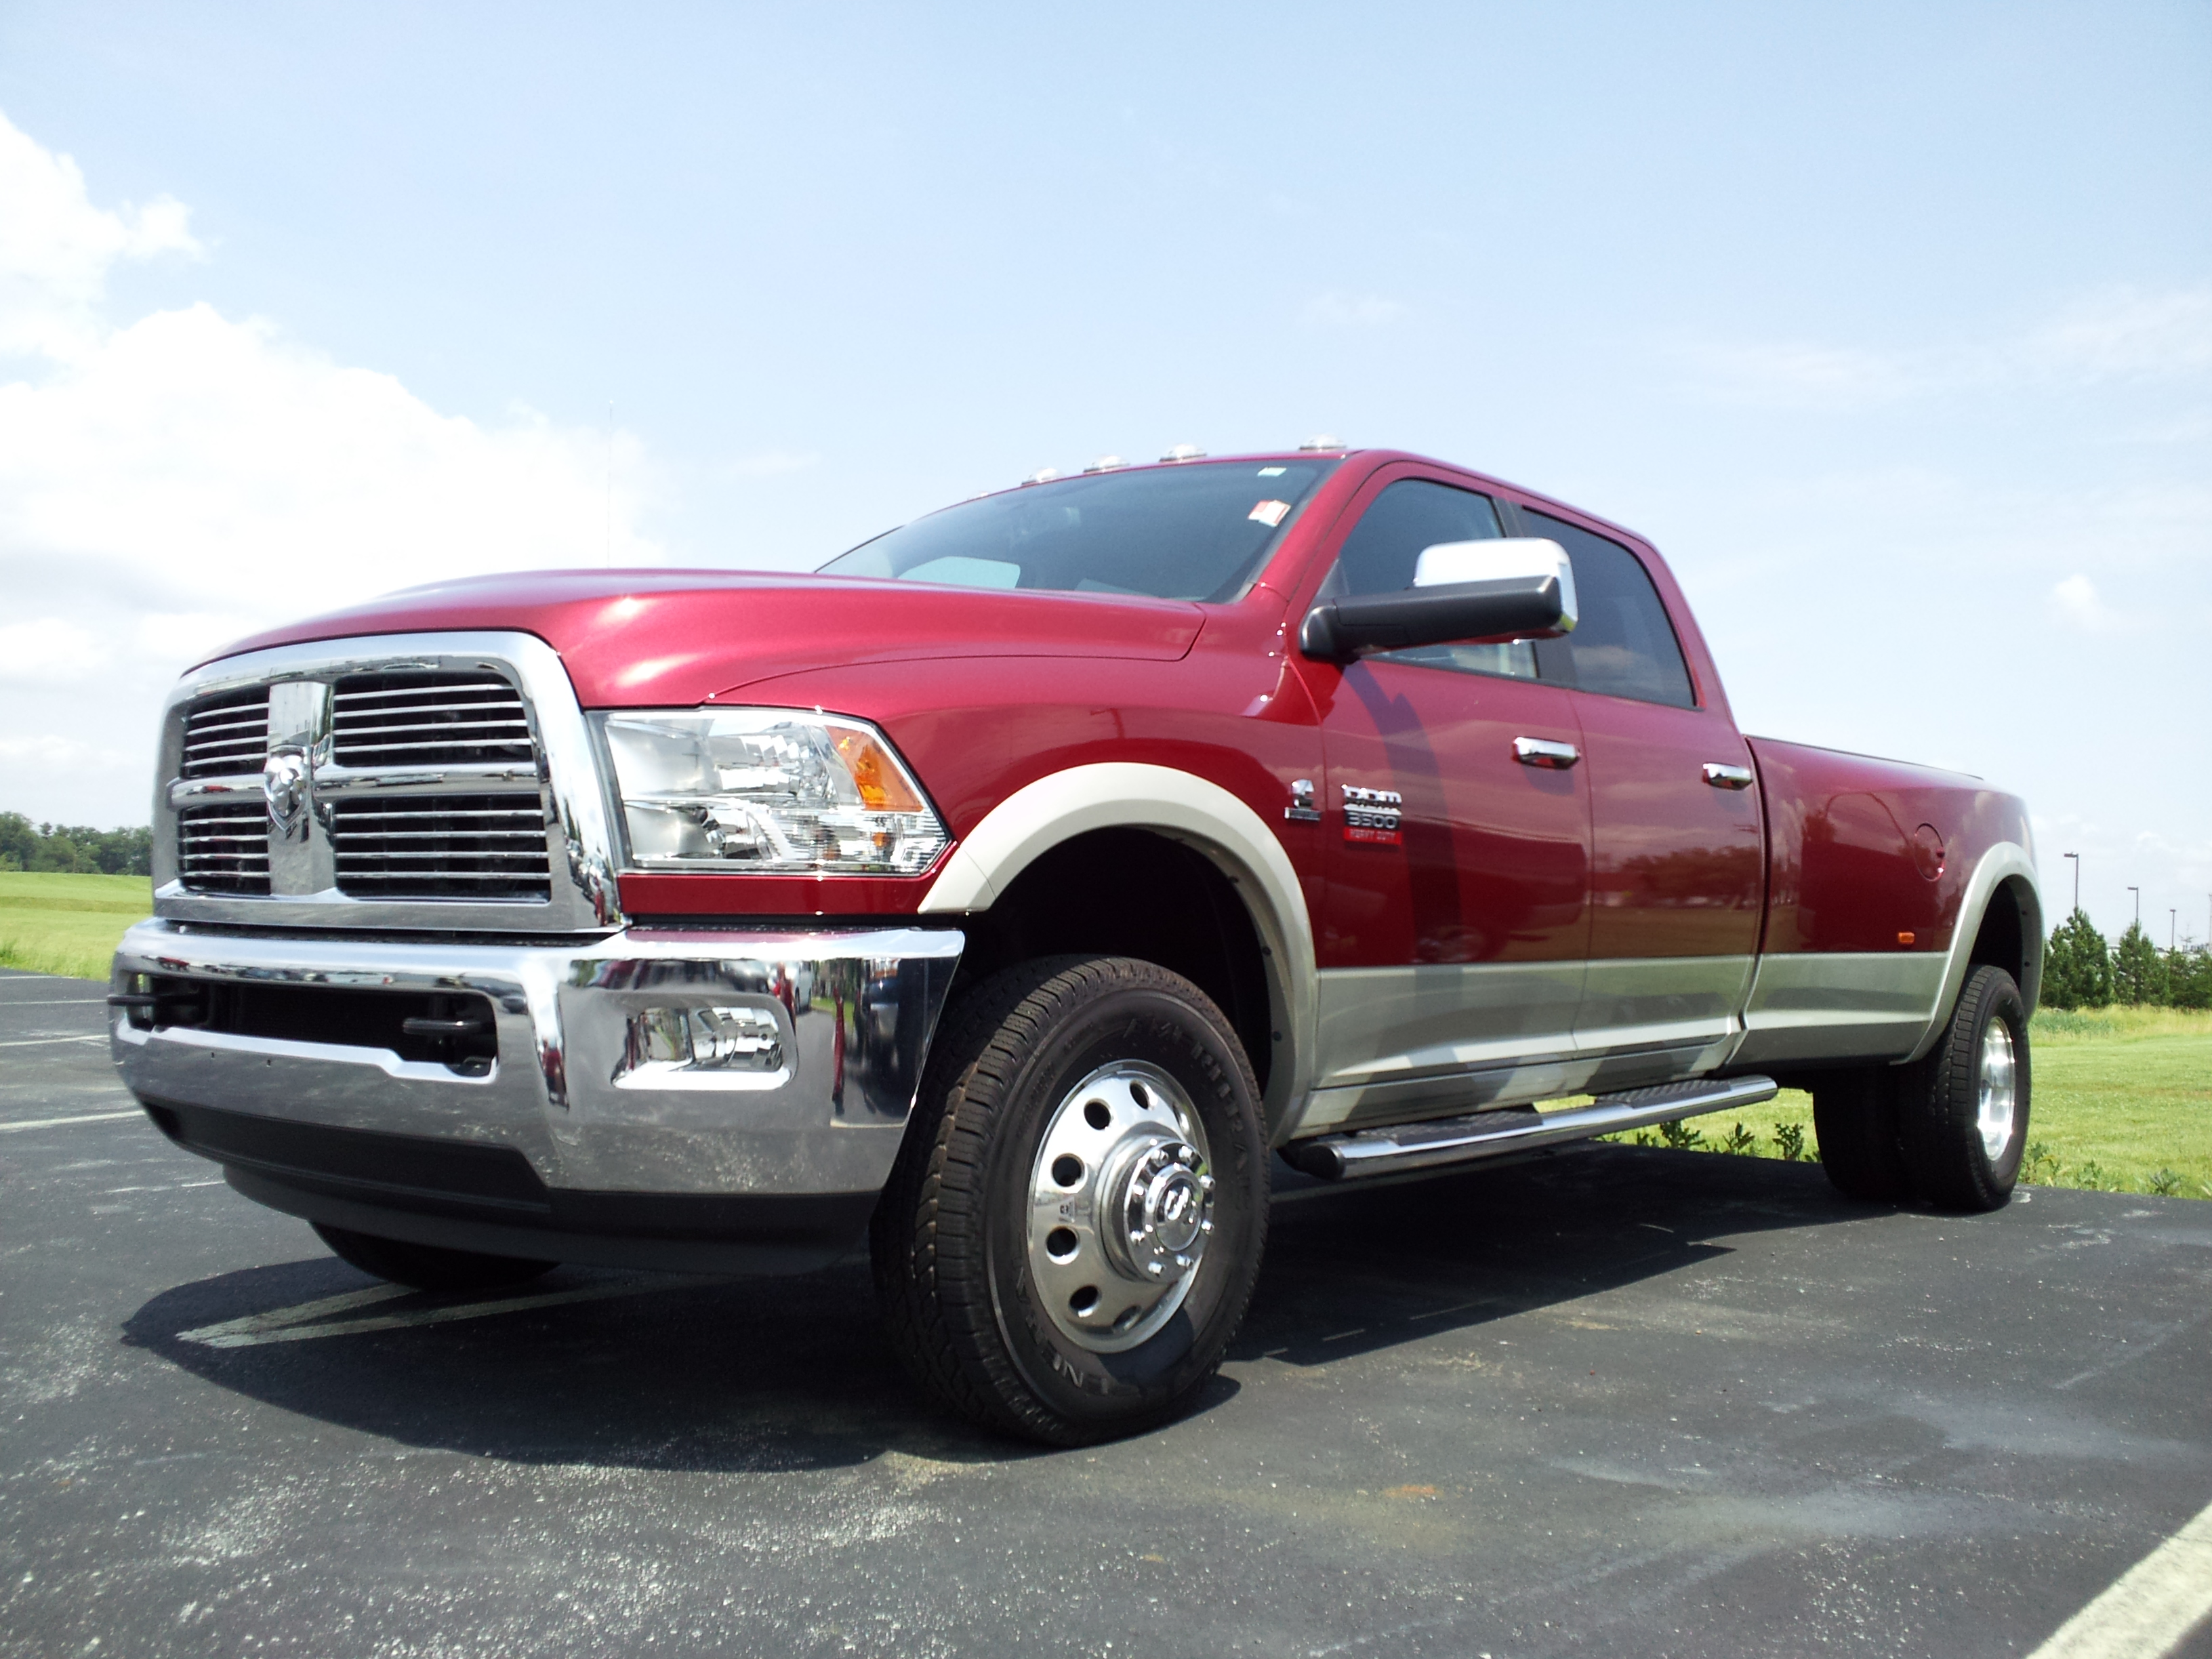 File:2011.5 RAM 3500 Loaded..jpg - Wikimedia Commons